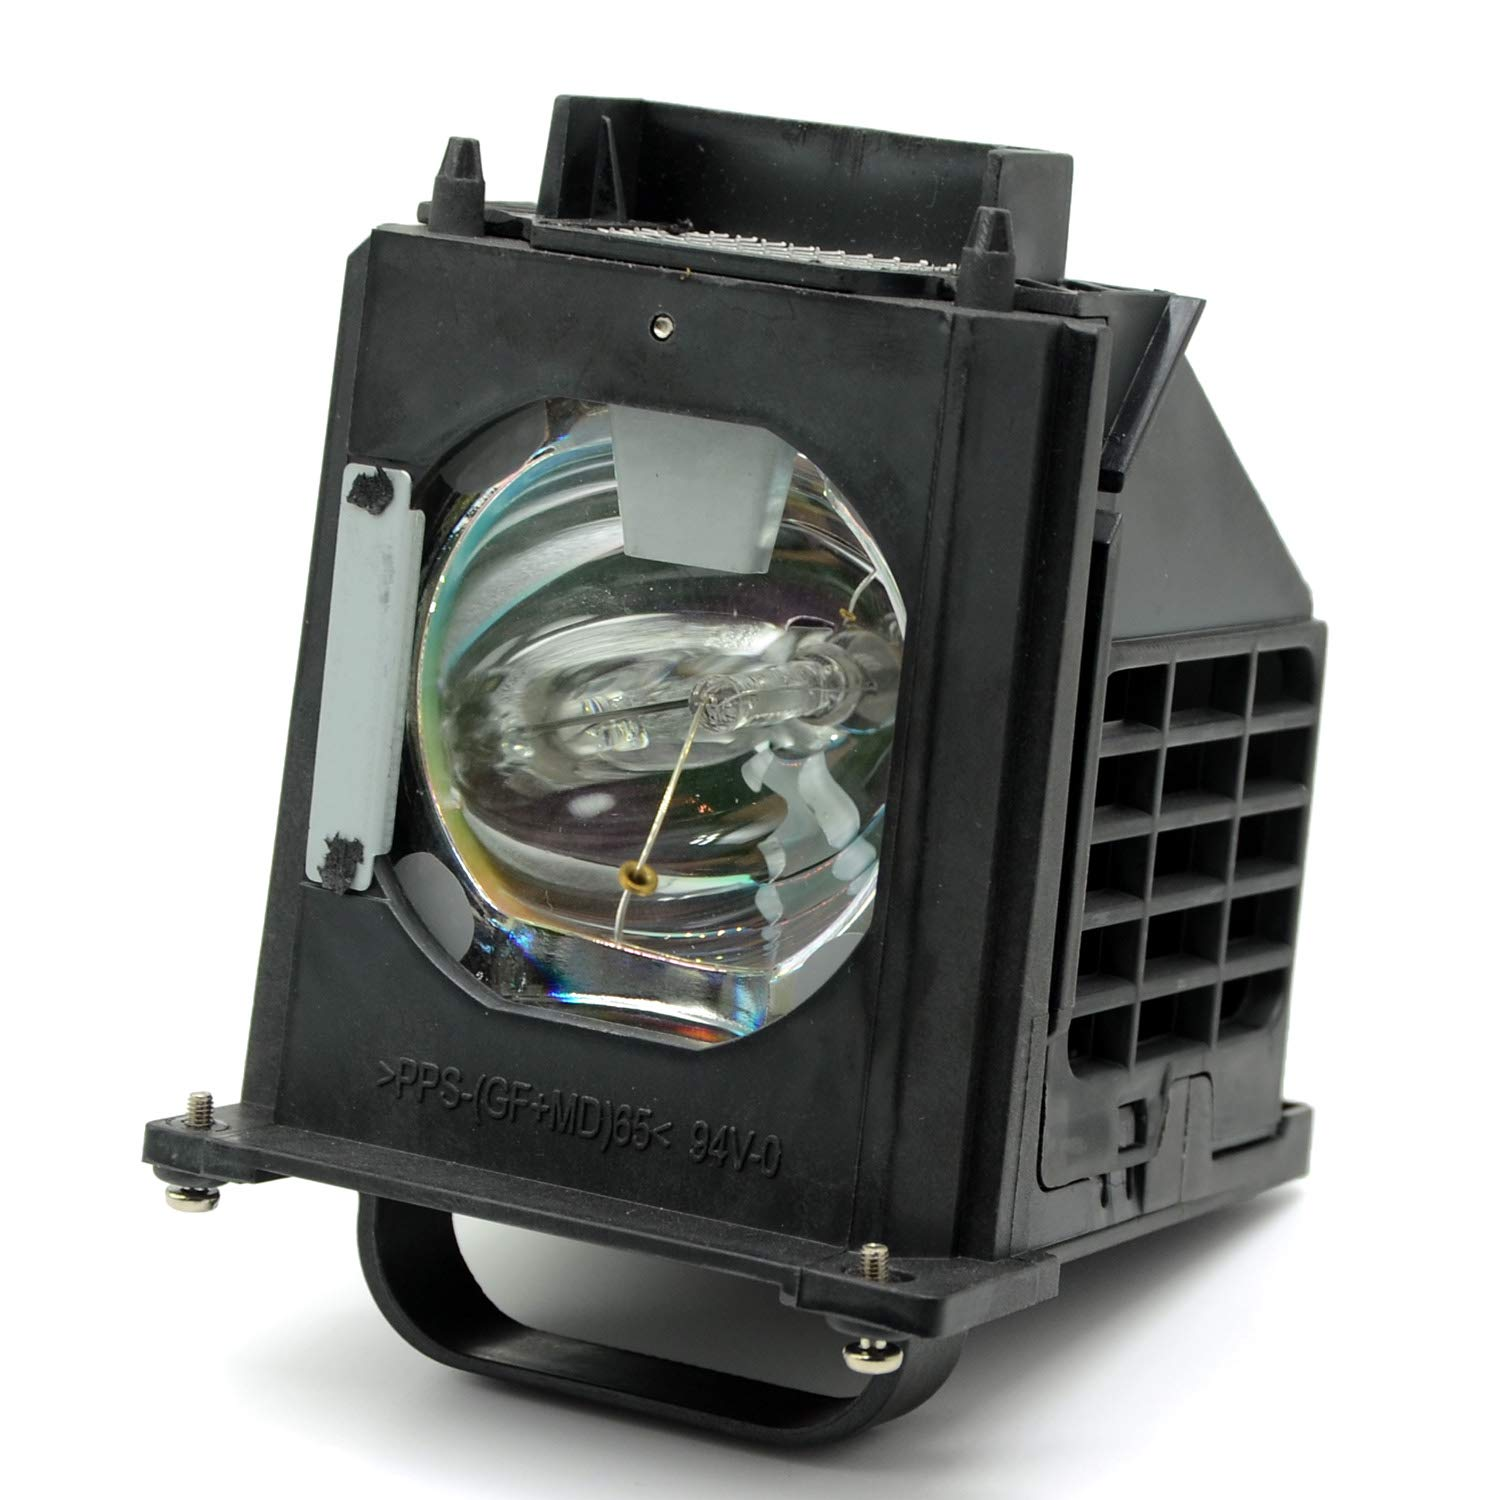 SpArc Platinum for Panasonic PT-F300U Projector Lamp Bulb Only